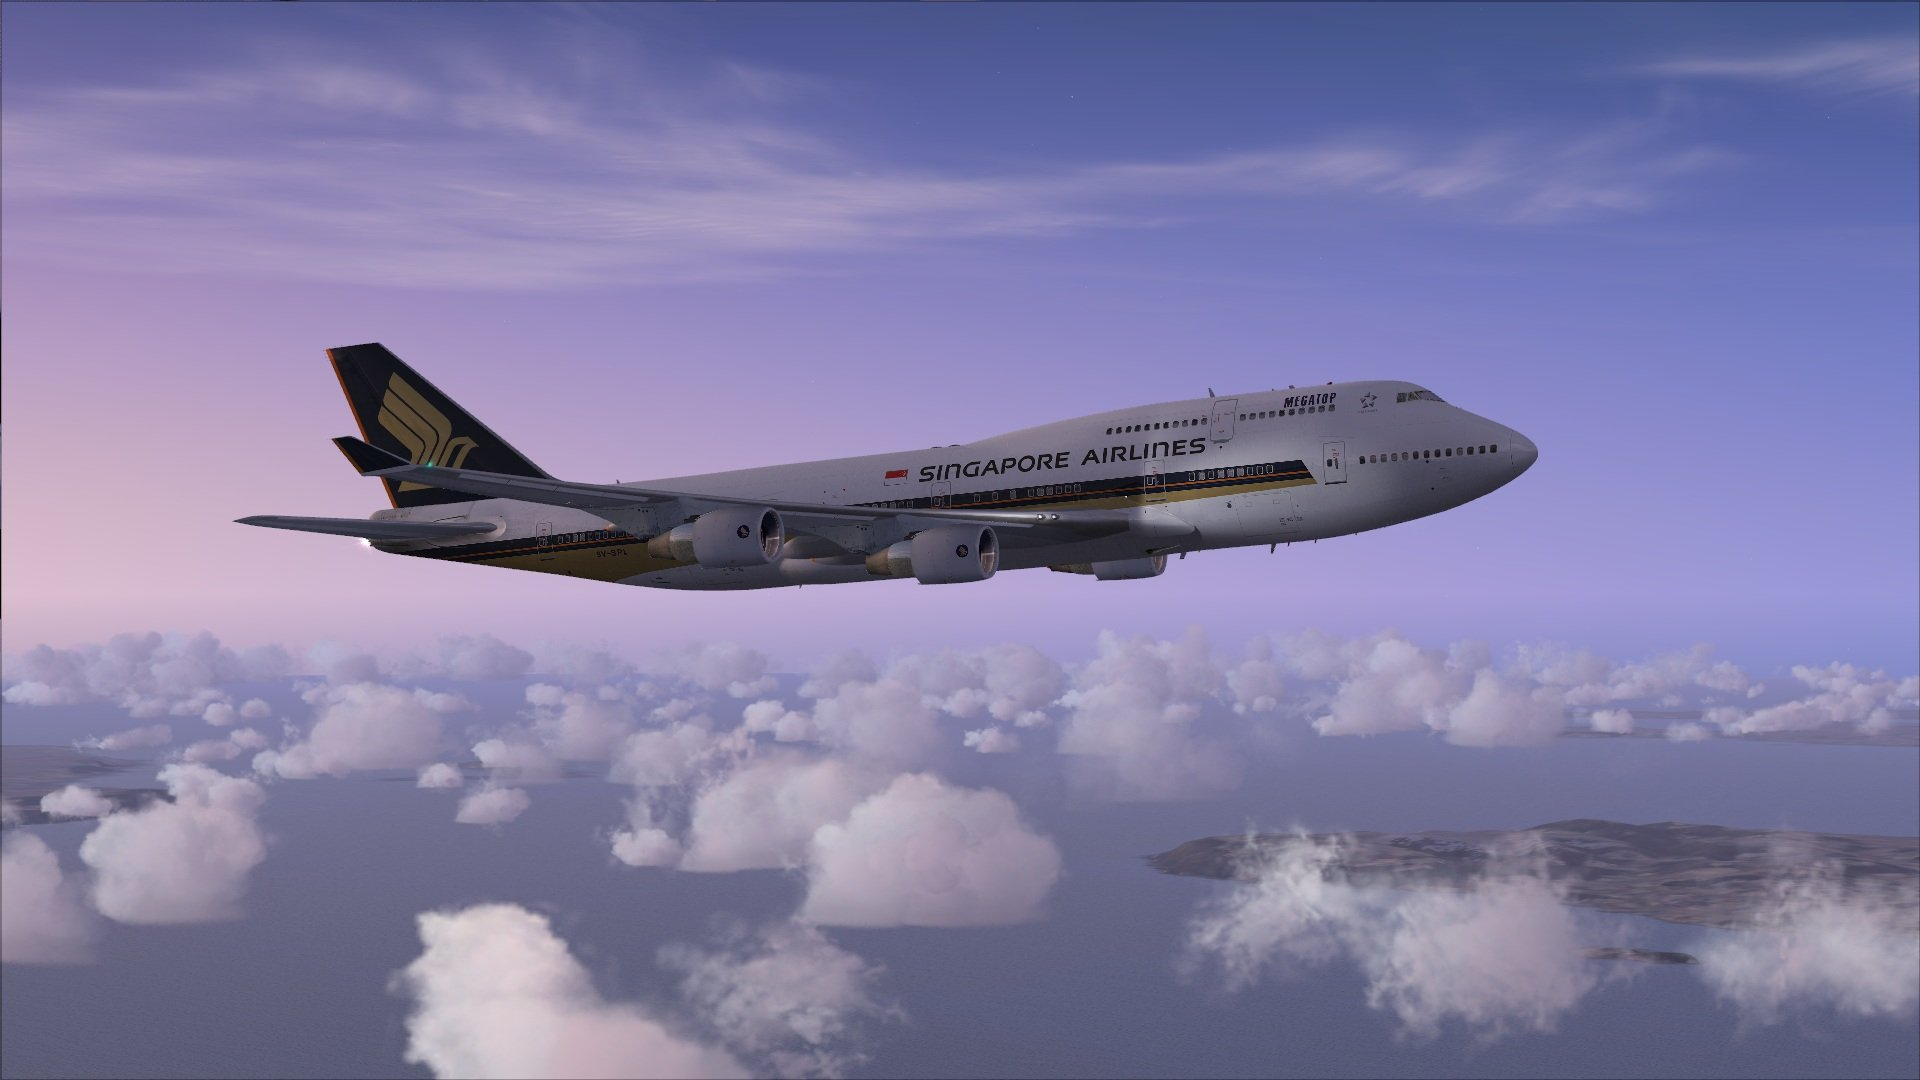 Singapore Airlines 747 Fsx wallpaper   776882 1920x1080